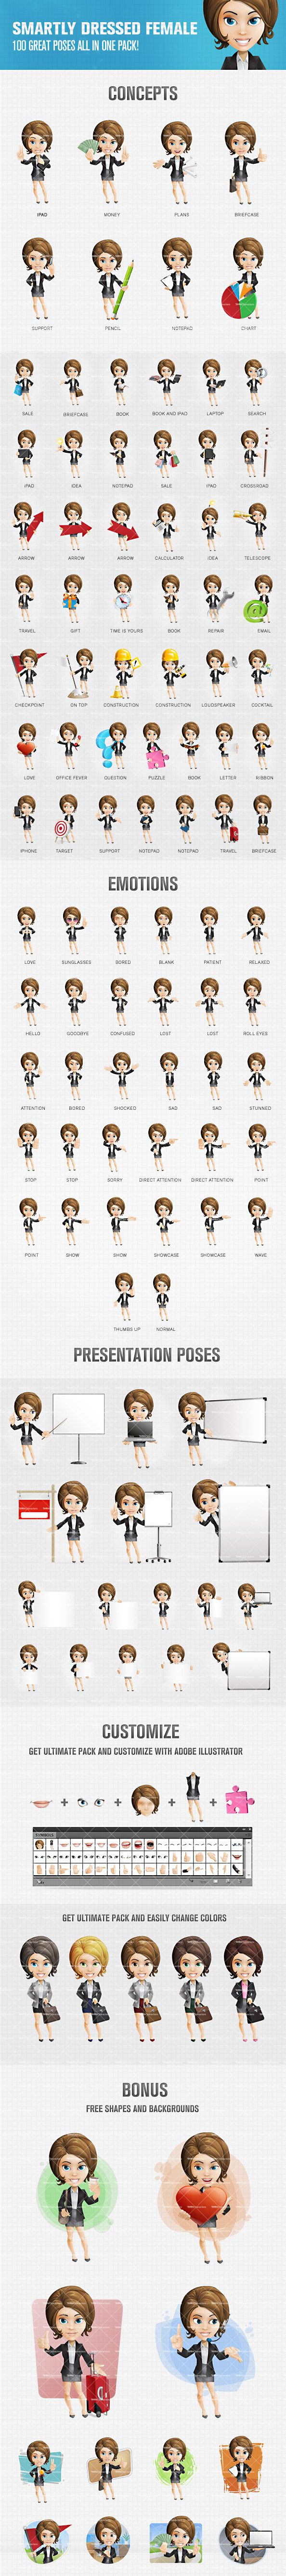 Smartly Dressed Female Cartoon Character #cartooncharacter #vectorcharacter